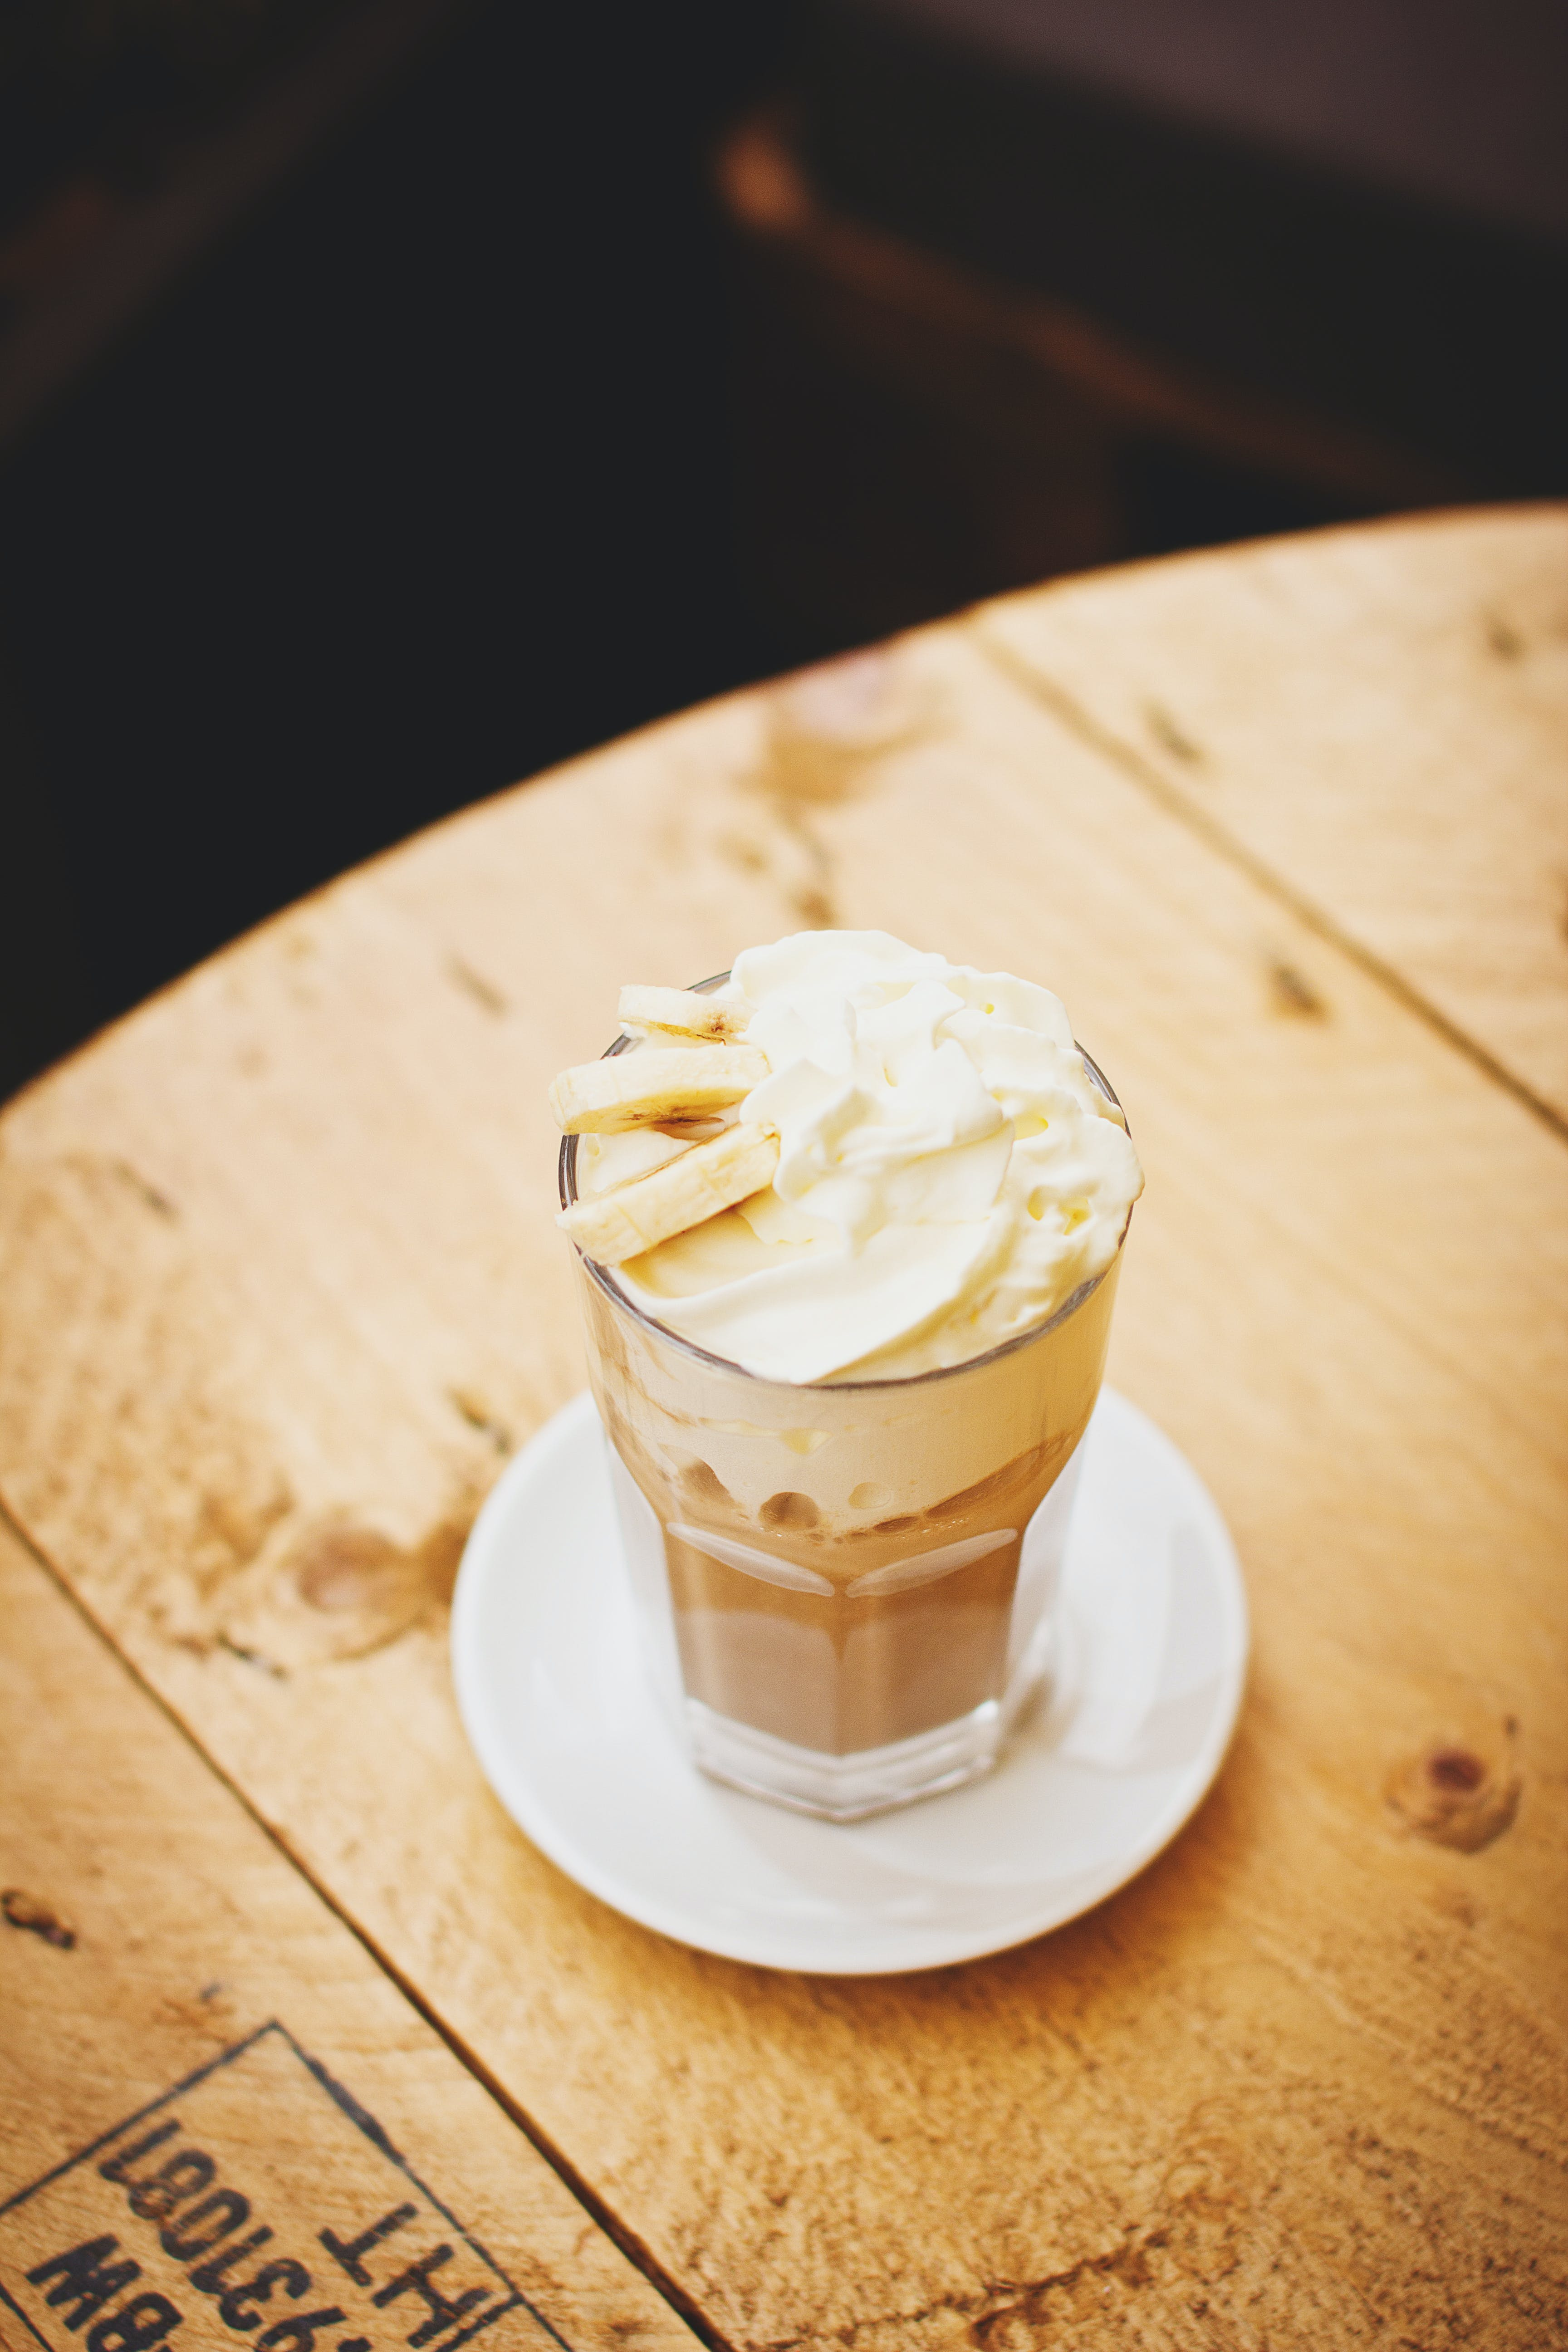 Photo of Clear Glass Cup With Whip Cream on Top Place on Saucer